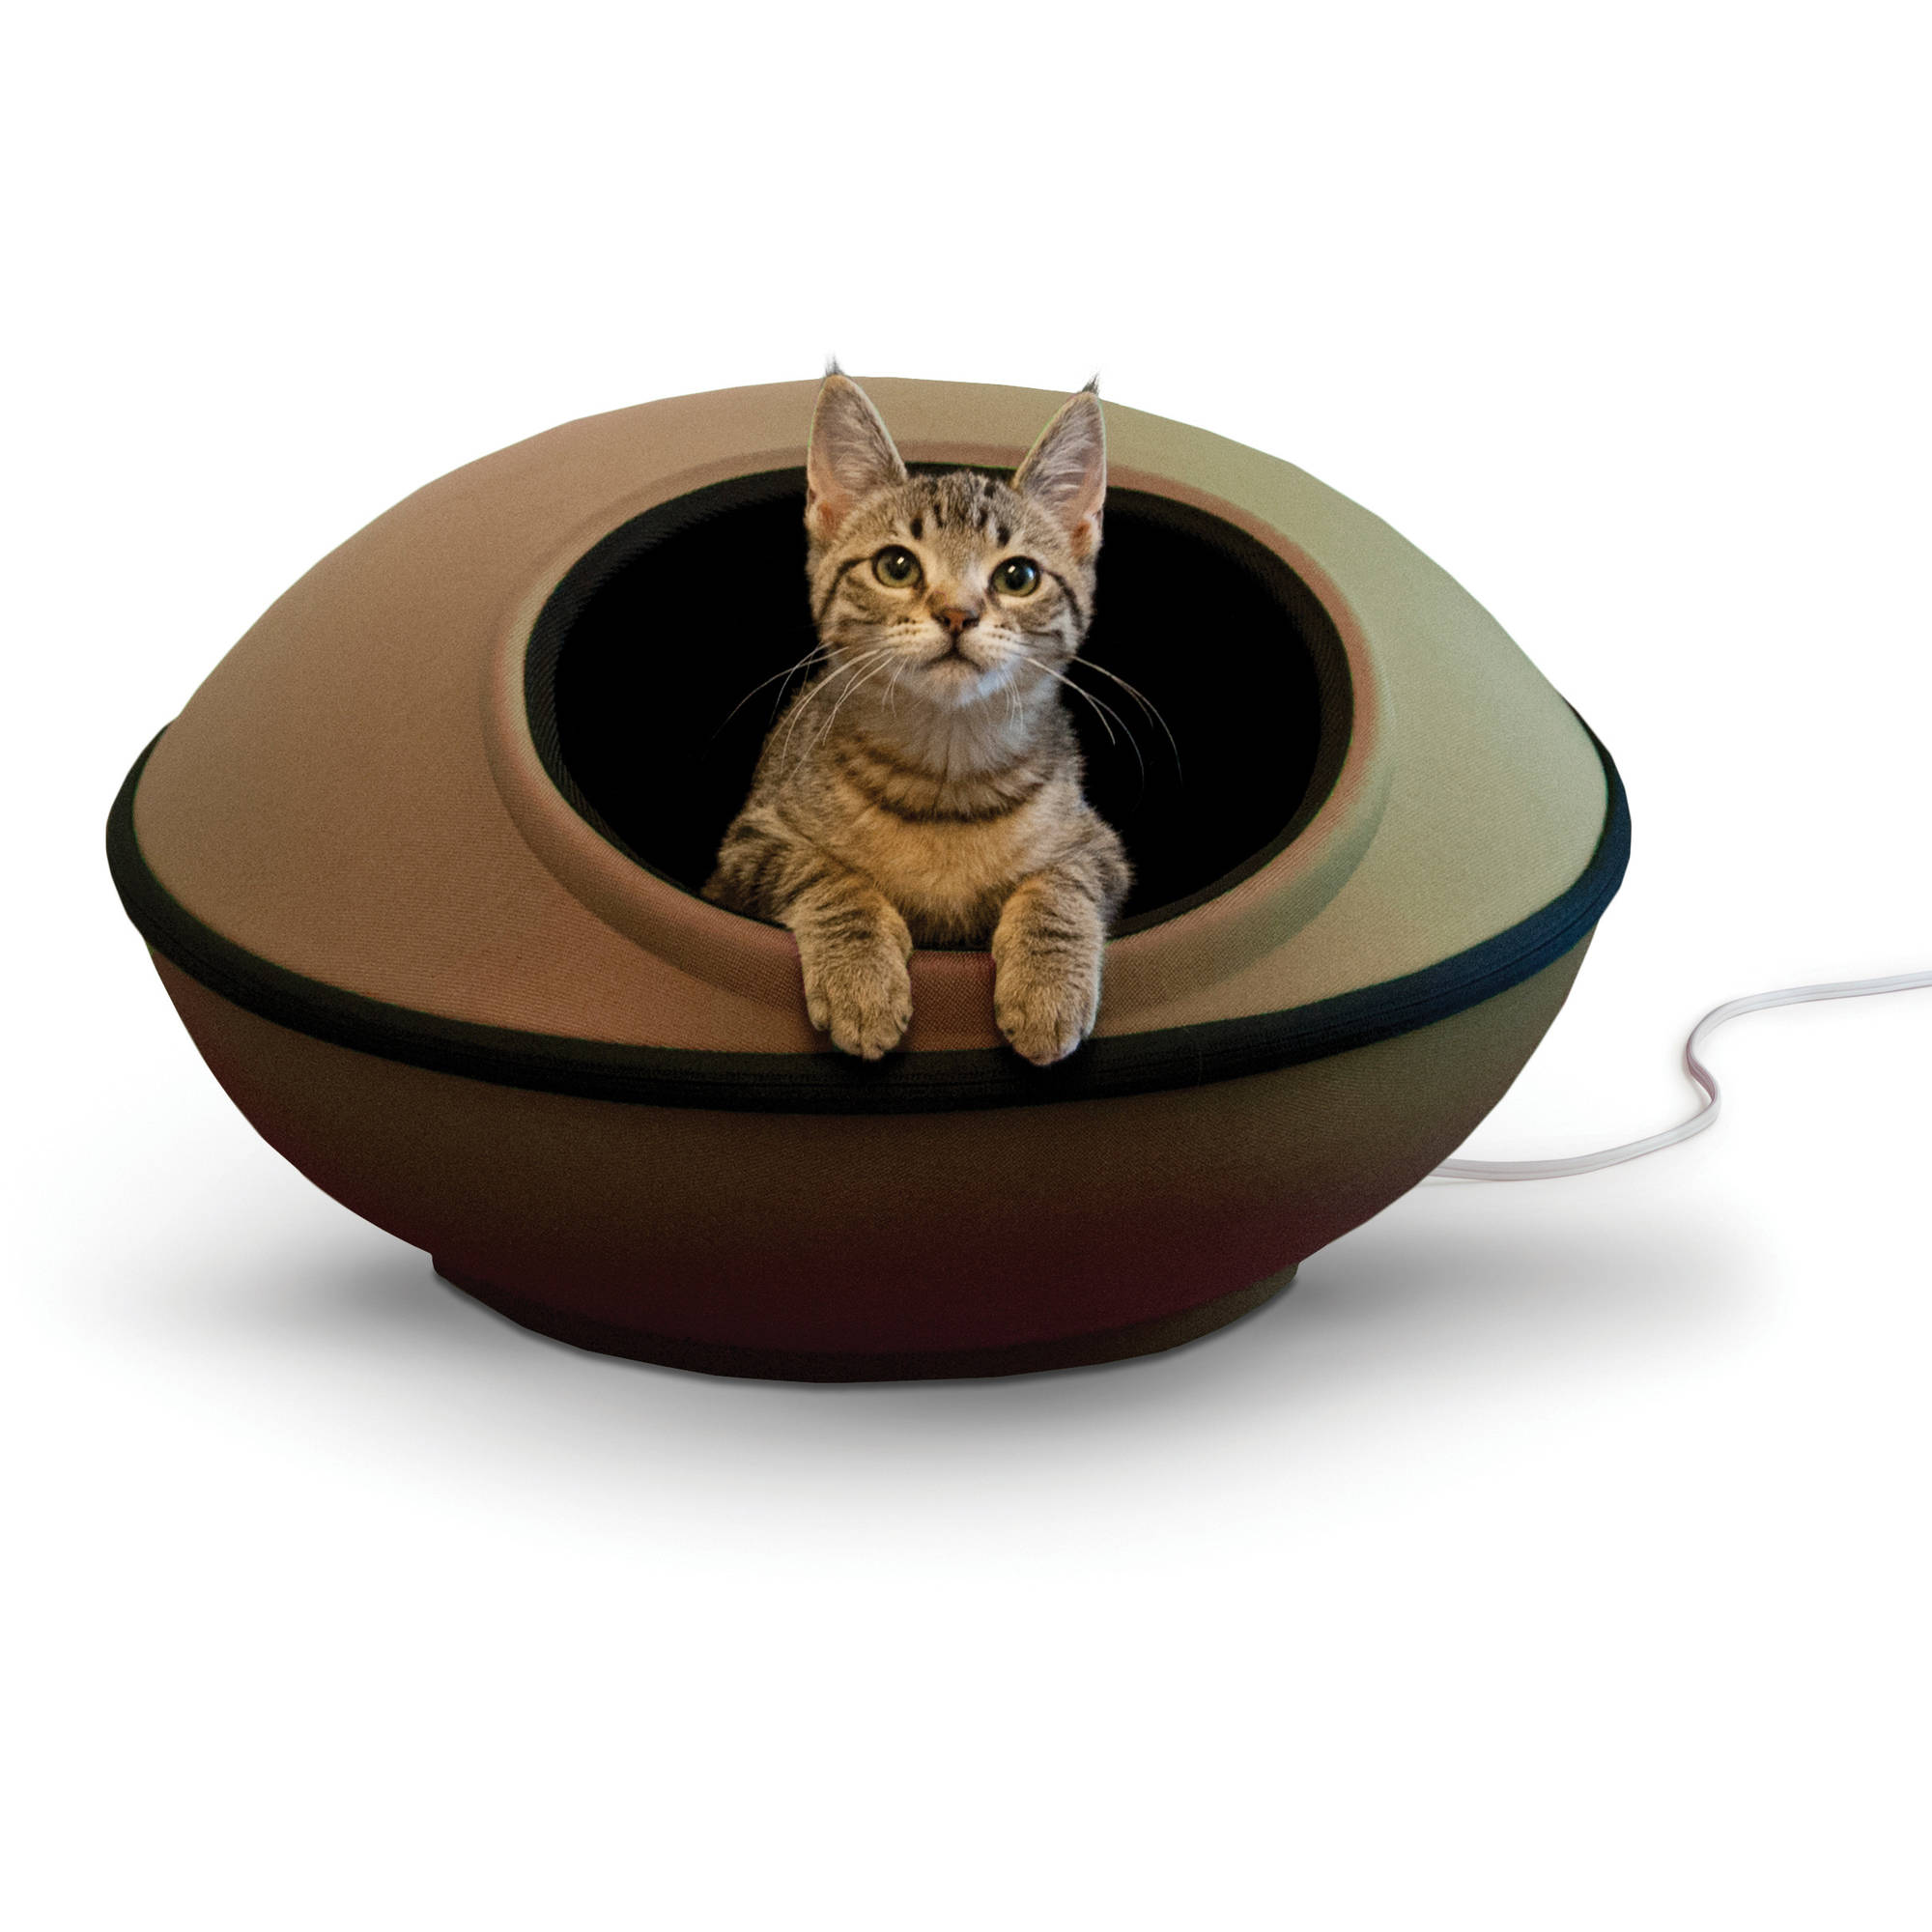 "K&H Pet Products Thermo-Mod Dream Pod Pet Bed, Small, 22""x22""x11.5"", Tan/Black"